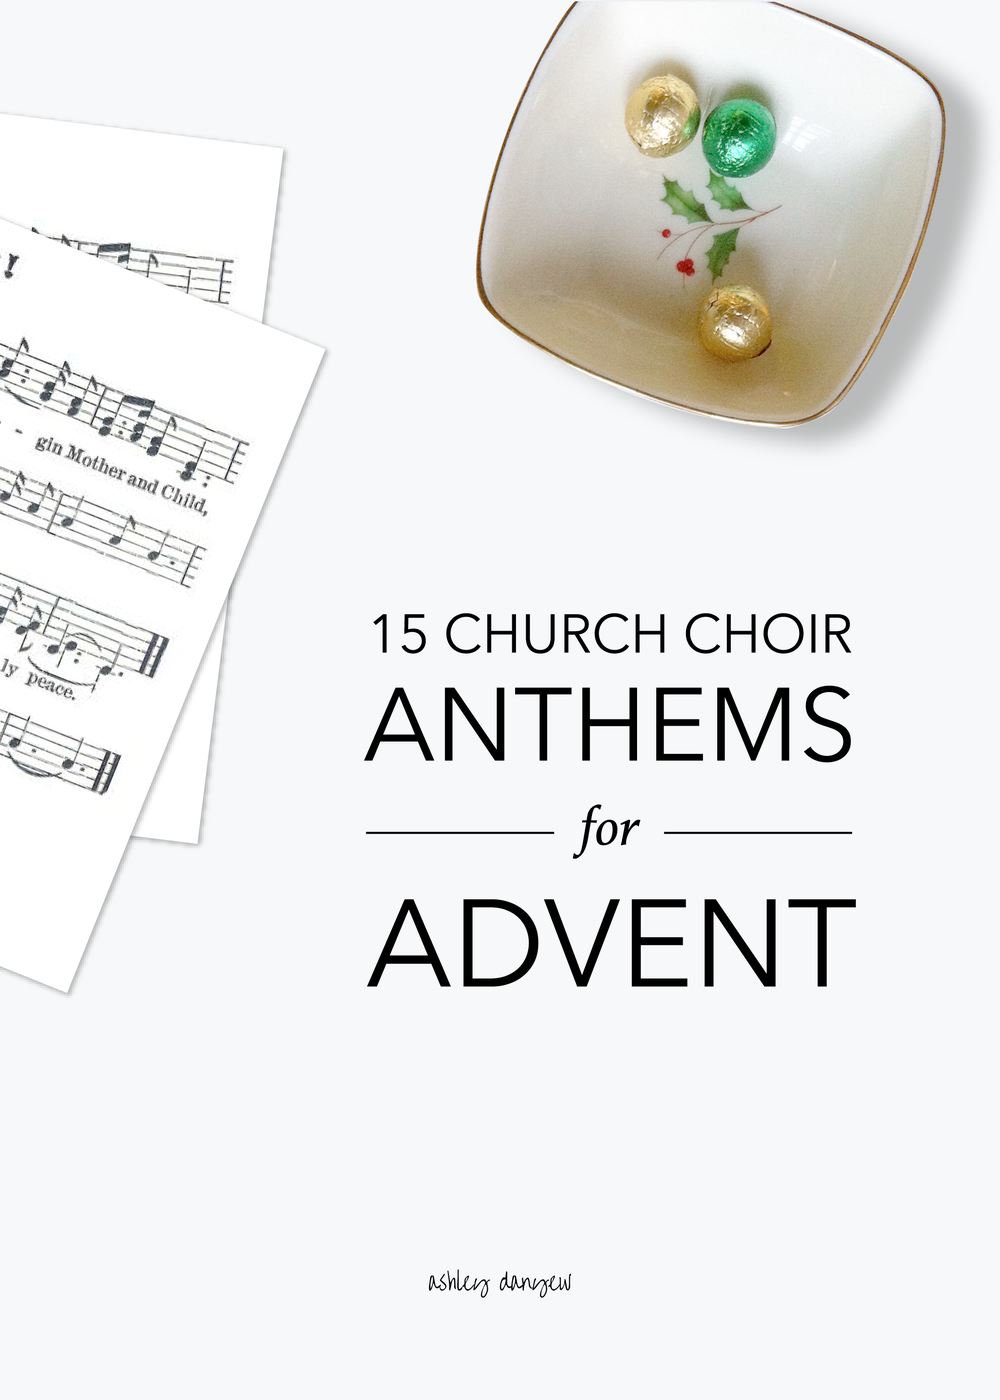 Fifteen Church Choir Anthems for Advent-01.png